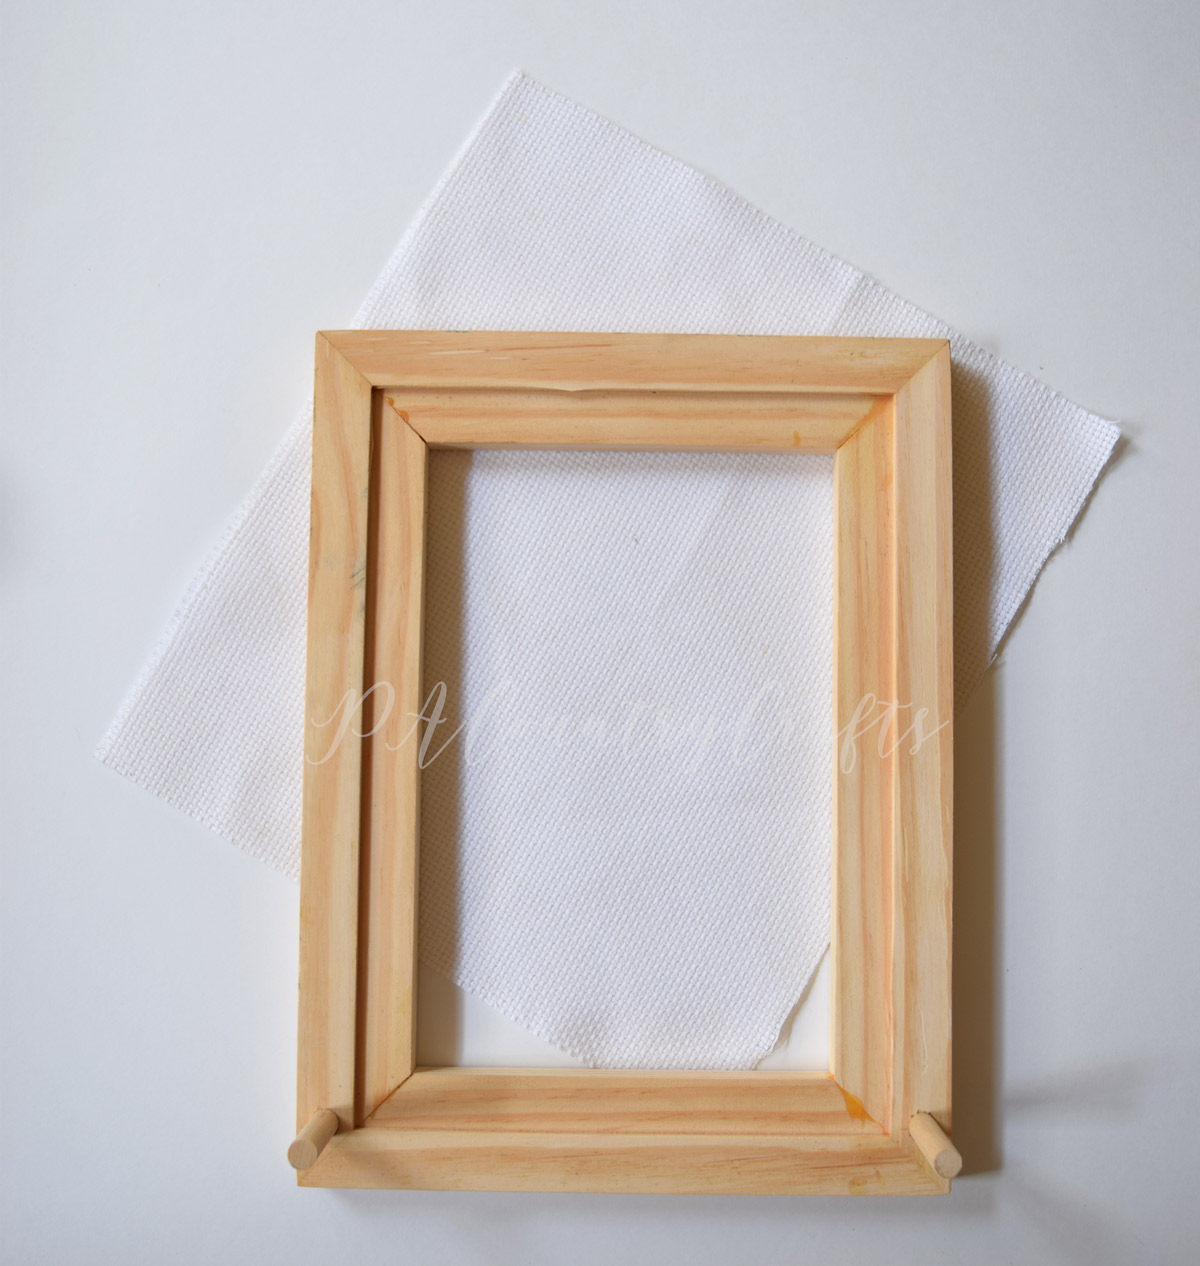 How to make an earring holder from a wood frame